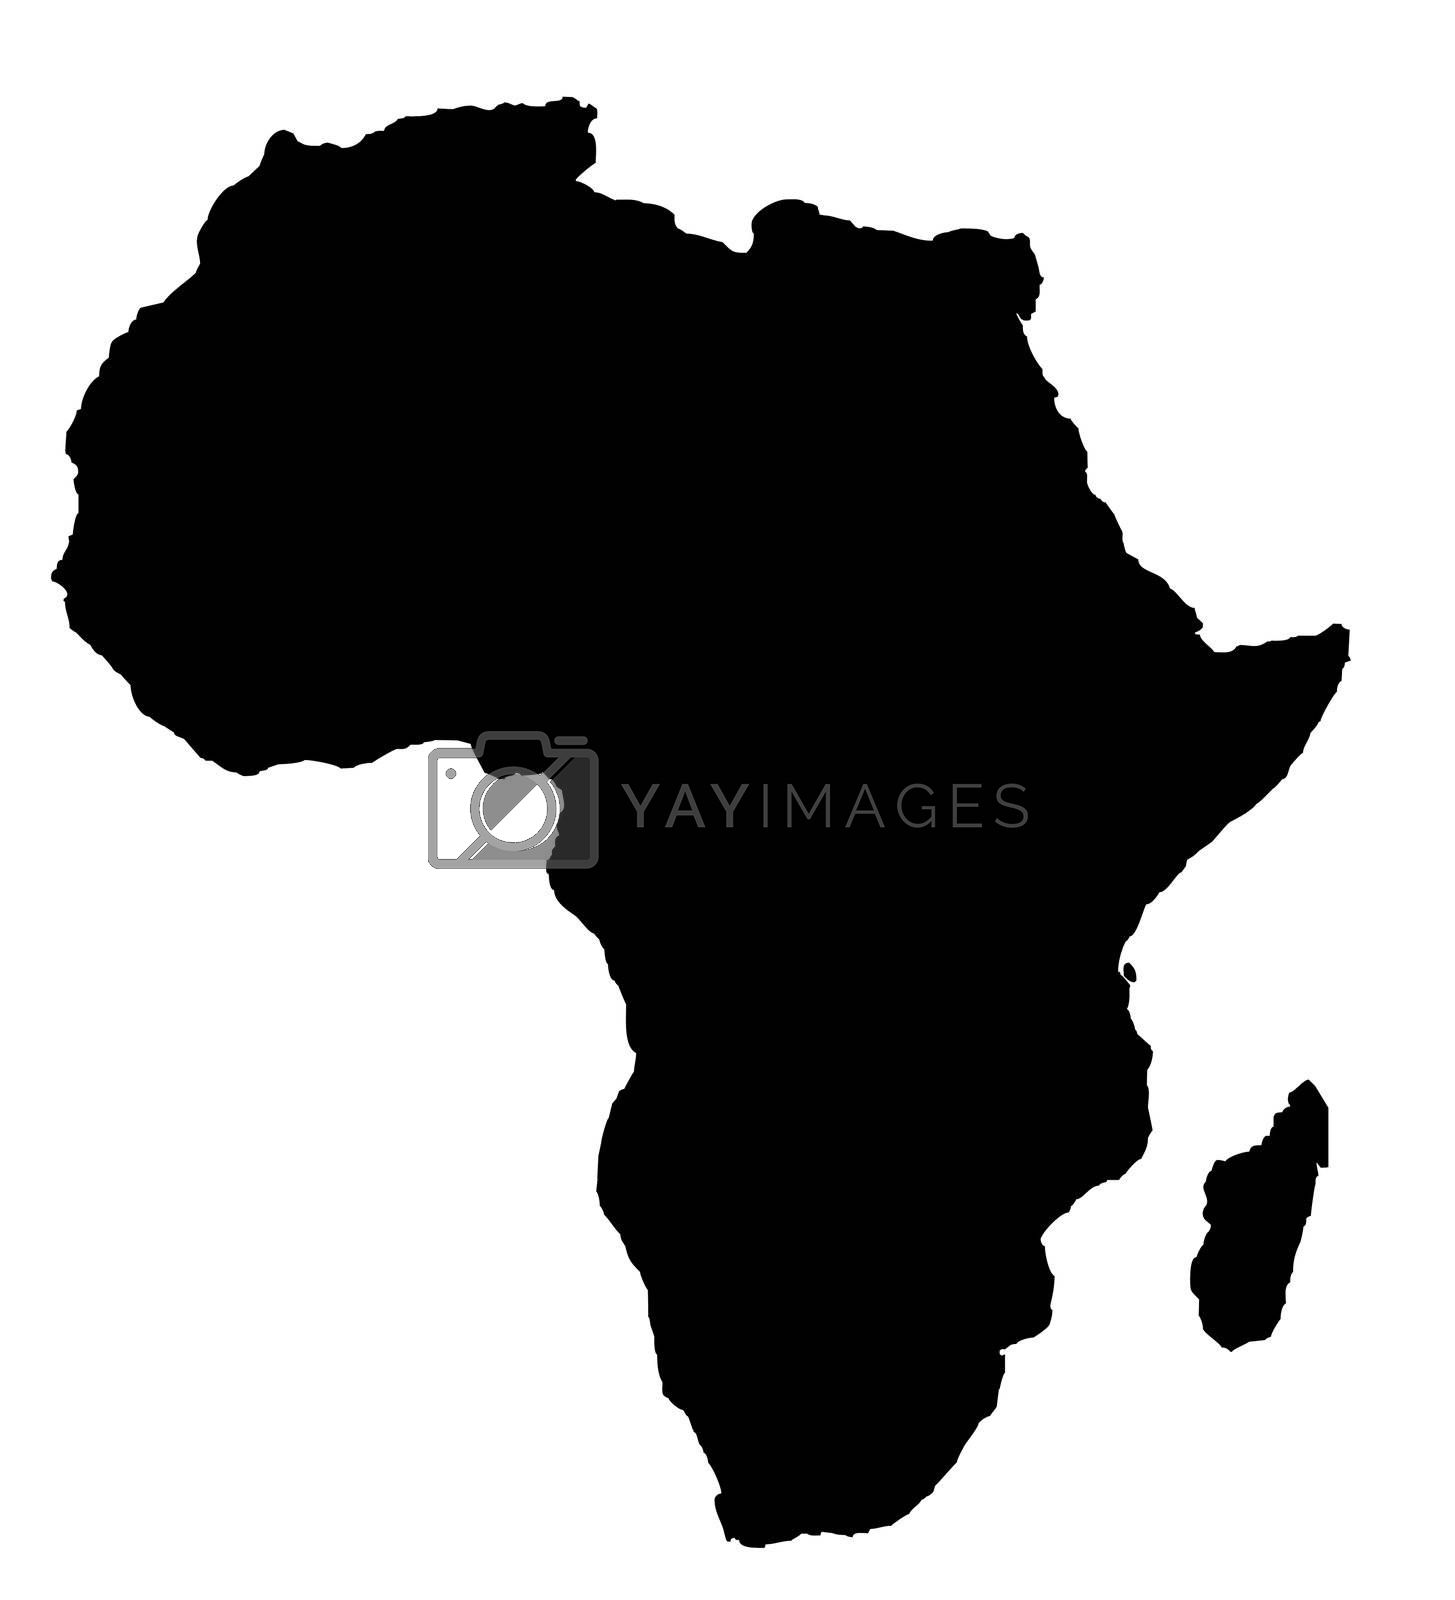 Royalty free image of Outline map of Africa continent in black by speedfighter